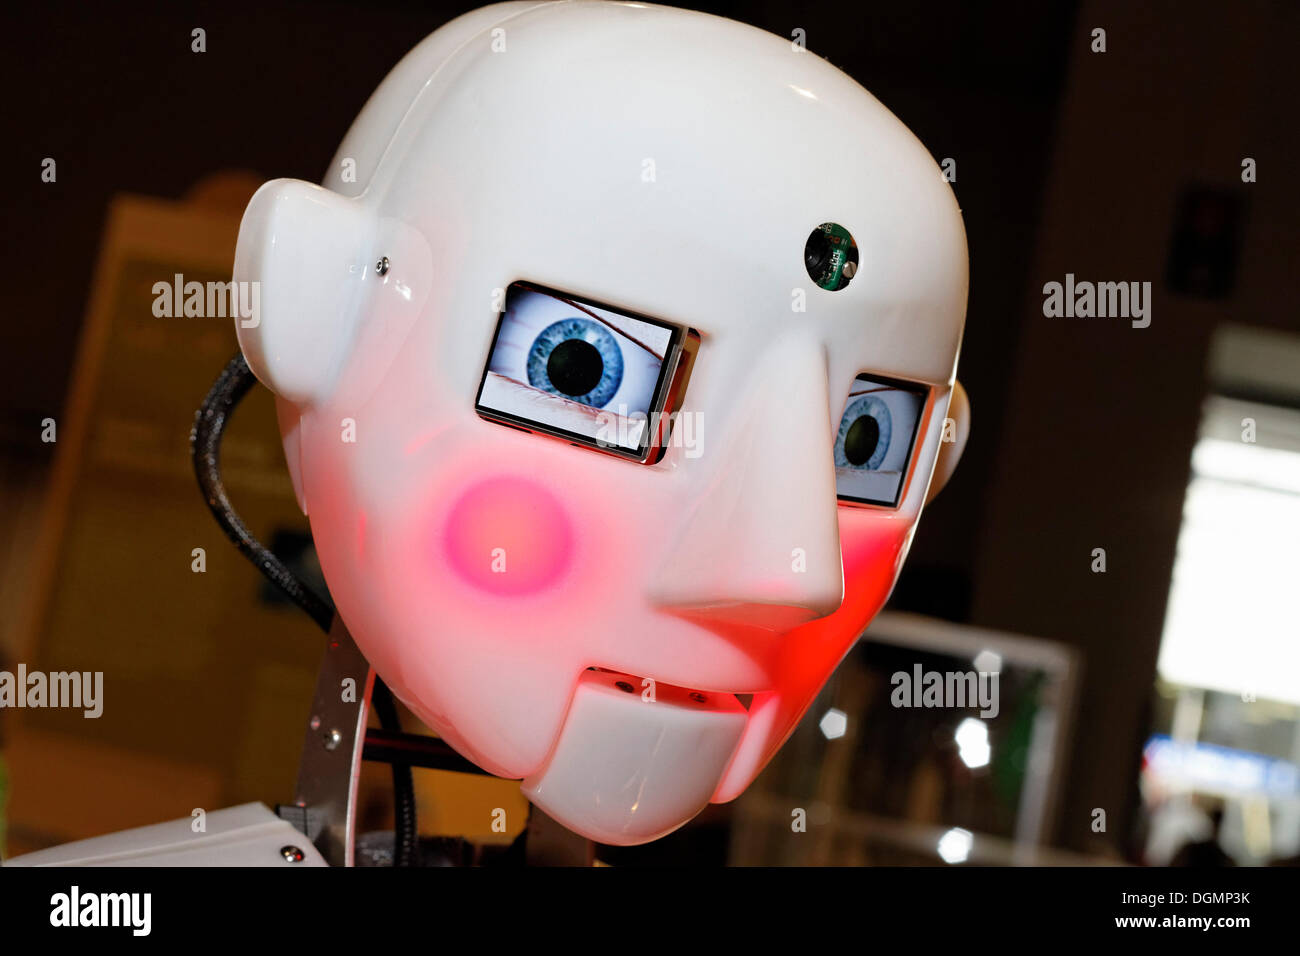 RoboThesbian, a humanoid robot by Engineered Arts, IdeenPark 2012, a technology and education summit conference for young people - Stock Image